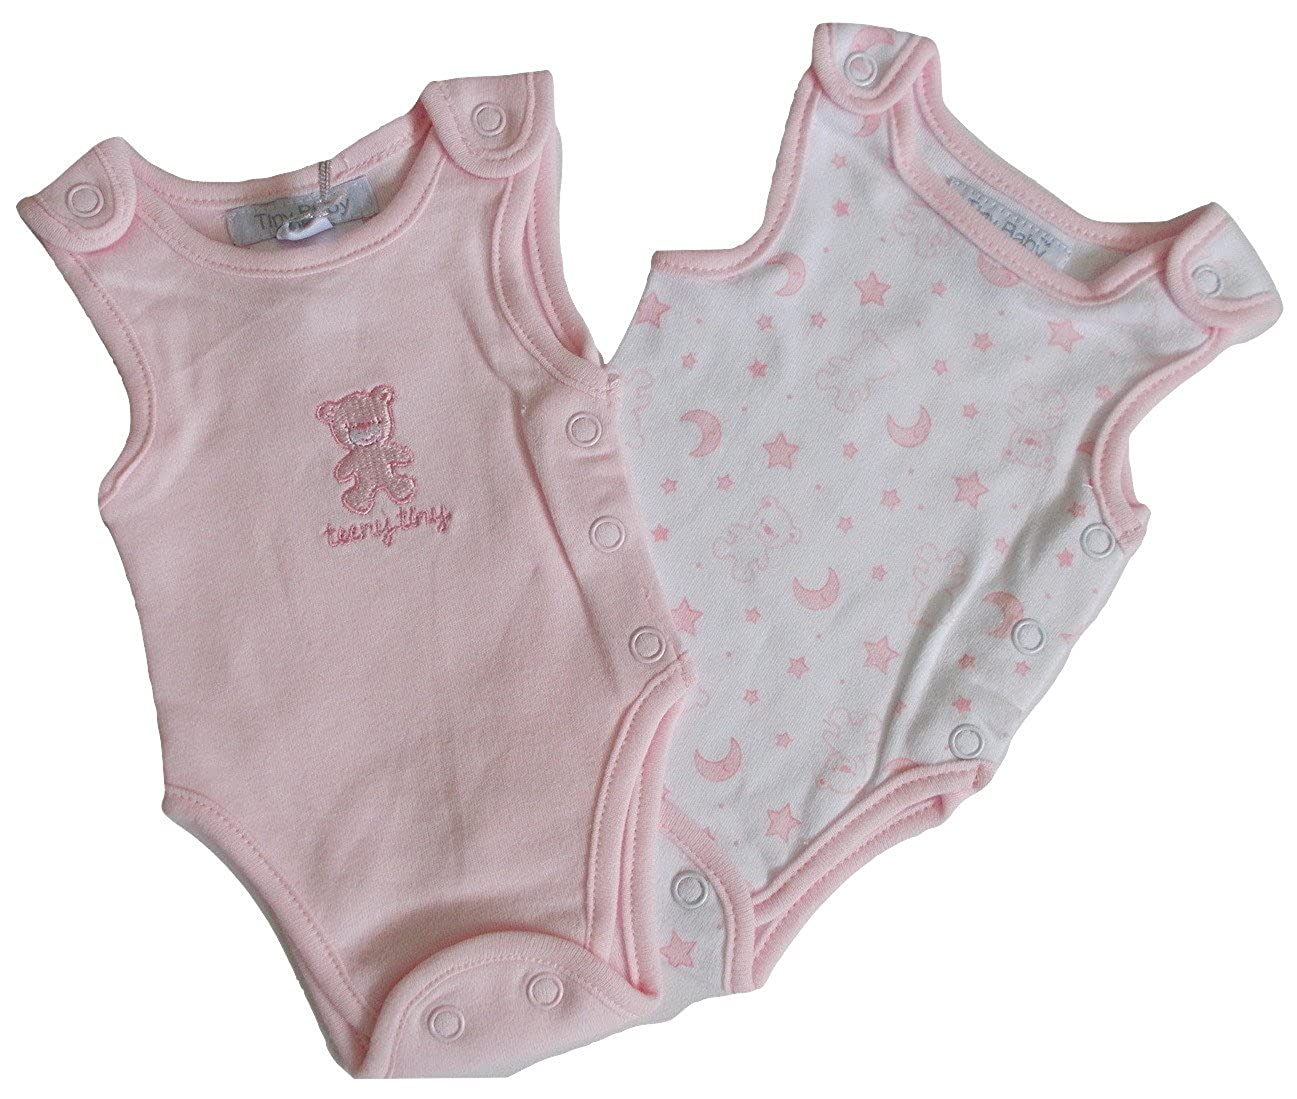 079434bb6 Tiny Baby Incubator Vests